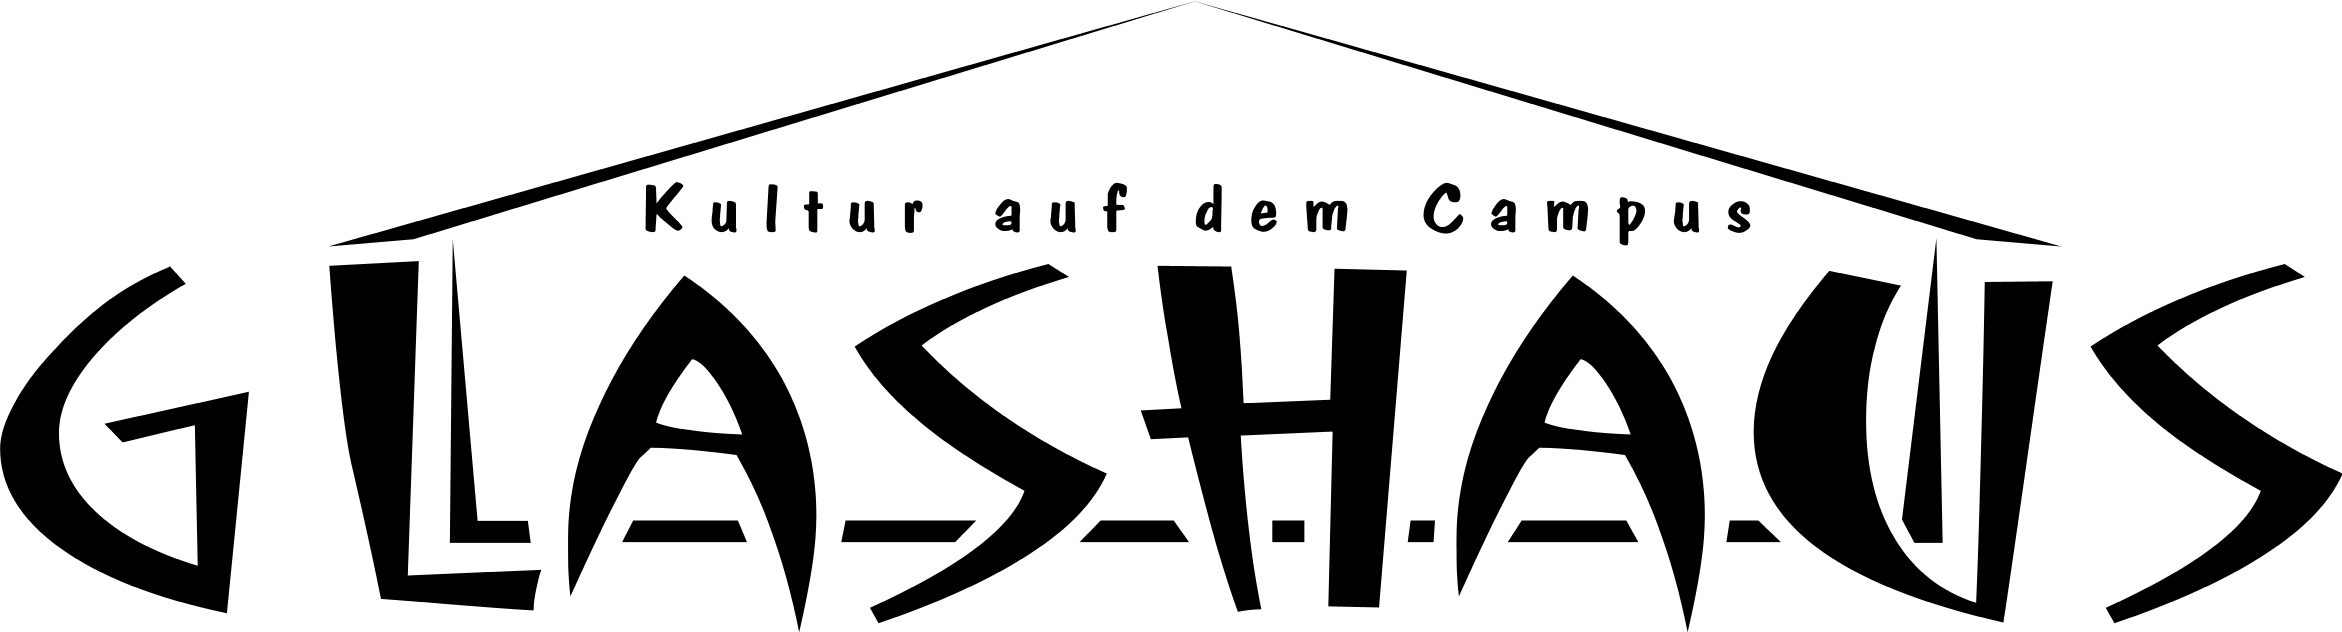 Glashaus-logo-gross